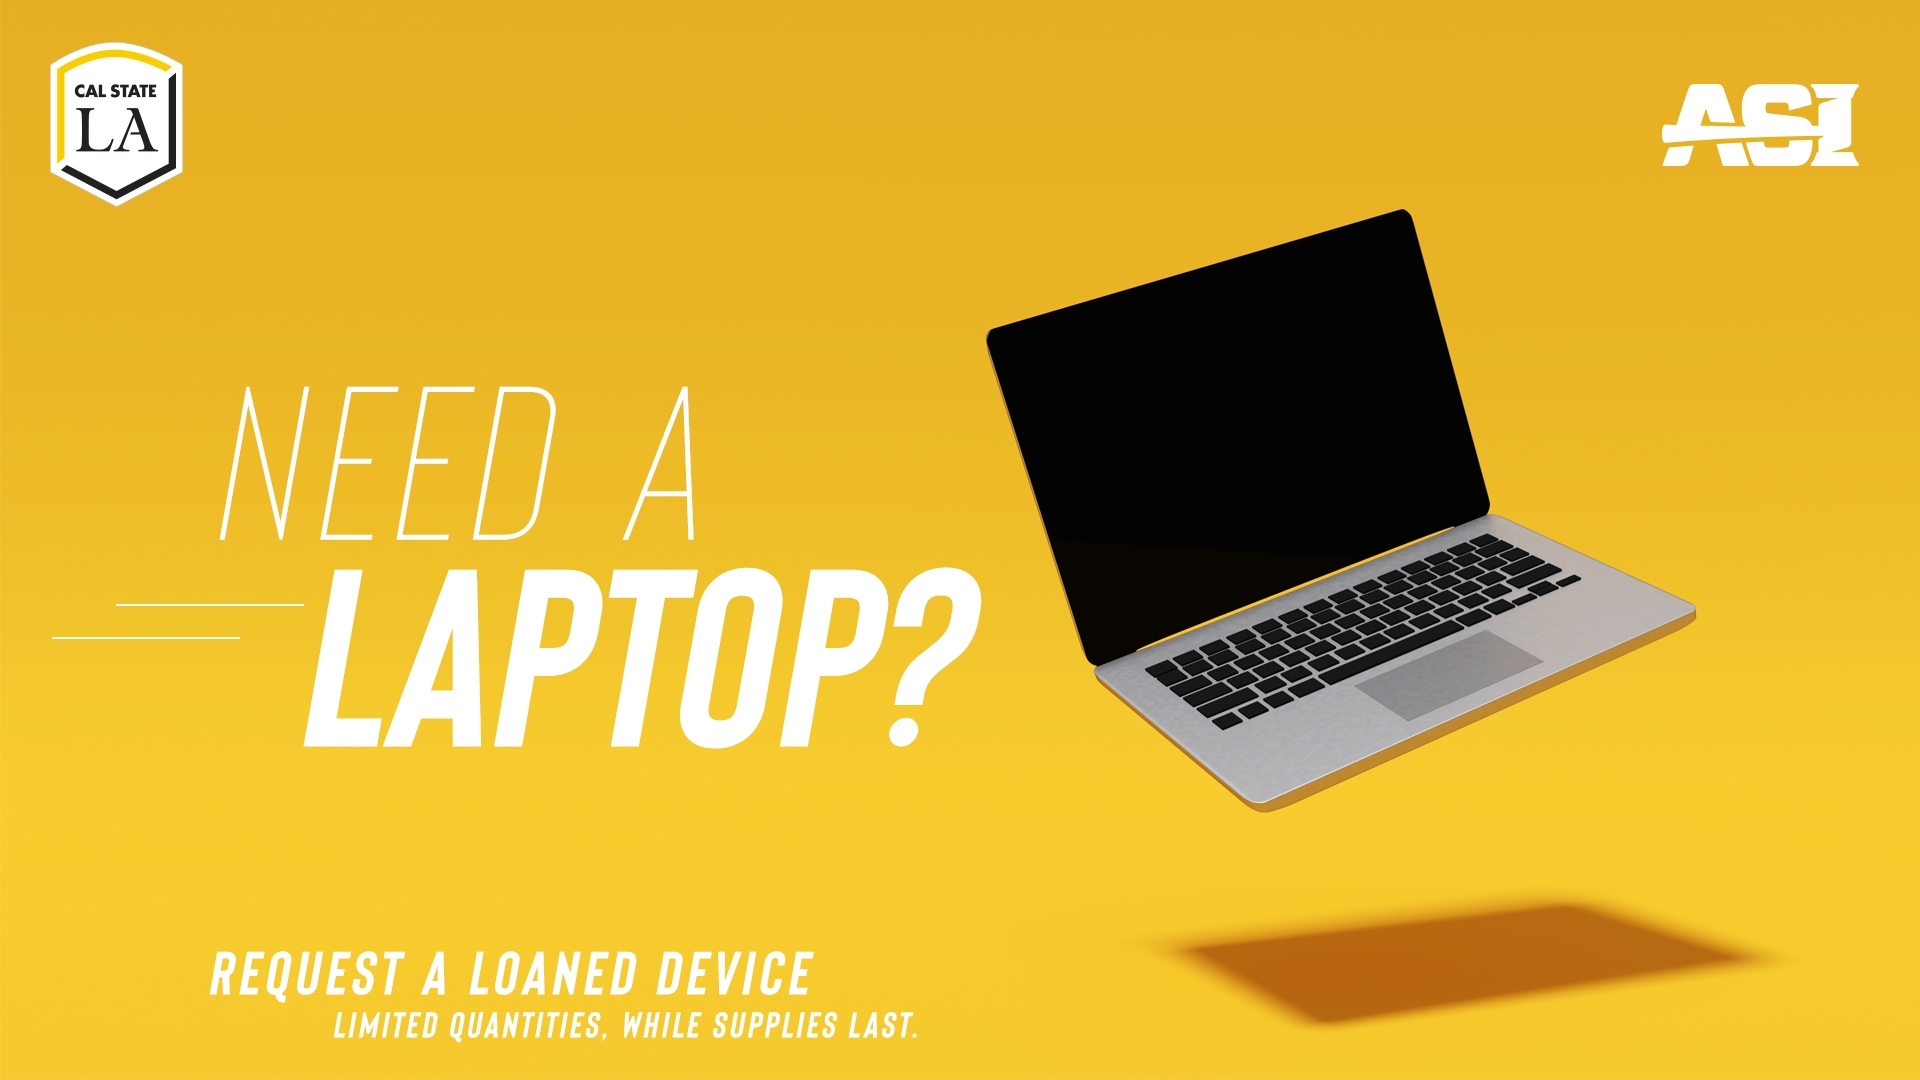 Need a laptop?